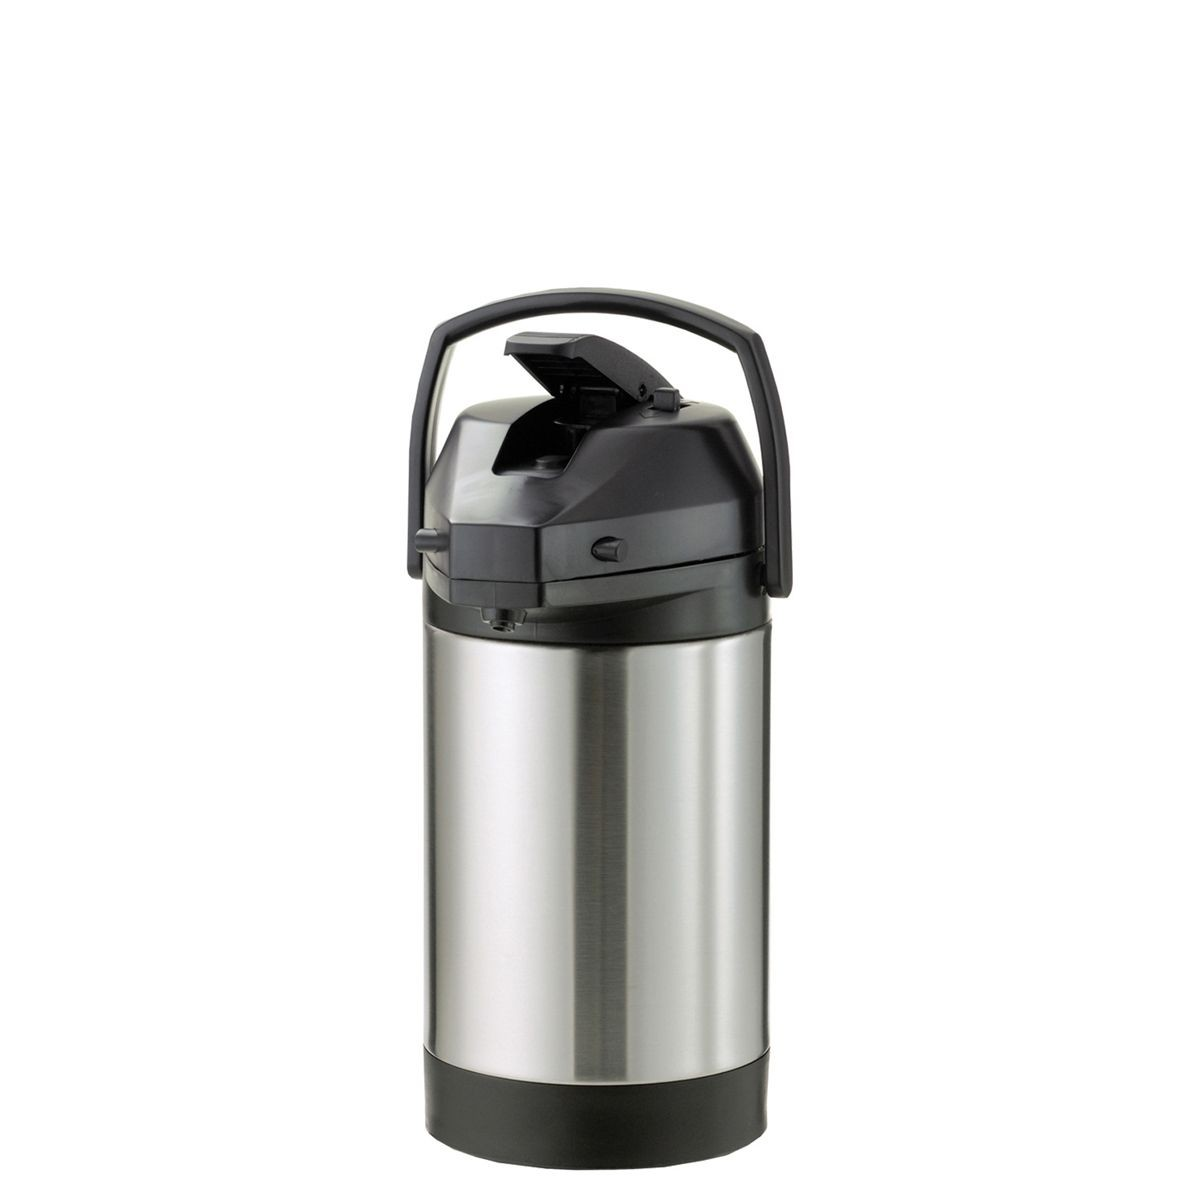 Service Ideas SVAP30L Economy Airpot with Interchangeable Lever Lid, Stainless 3 Liter